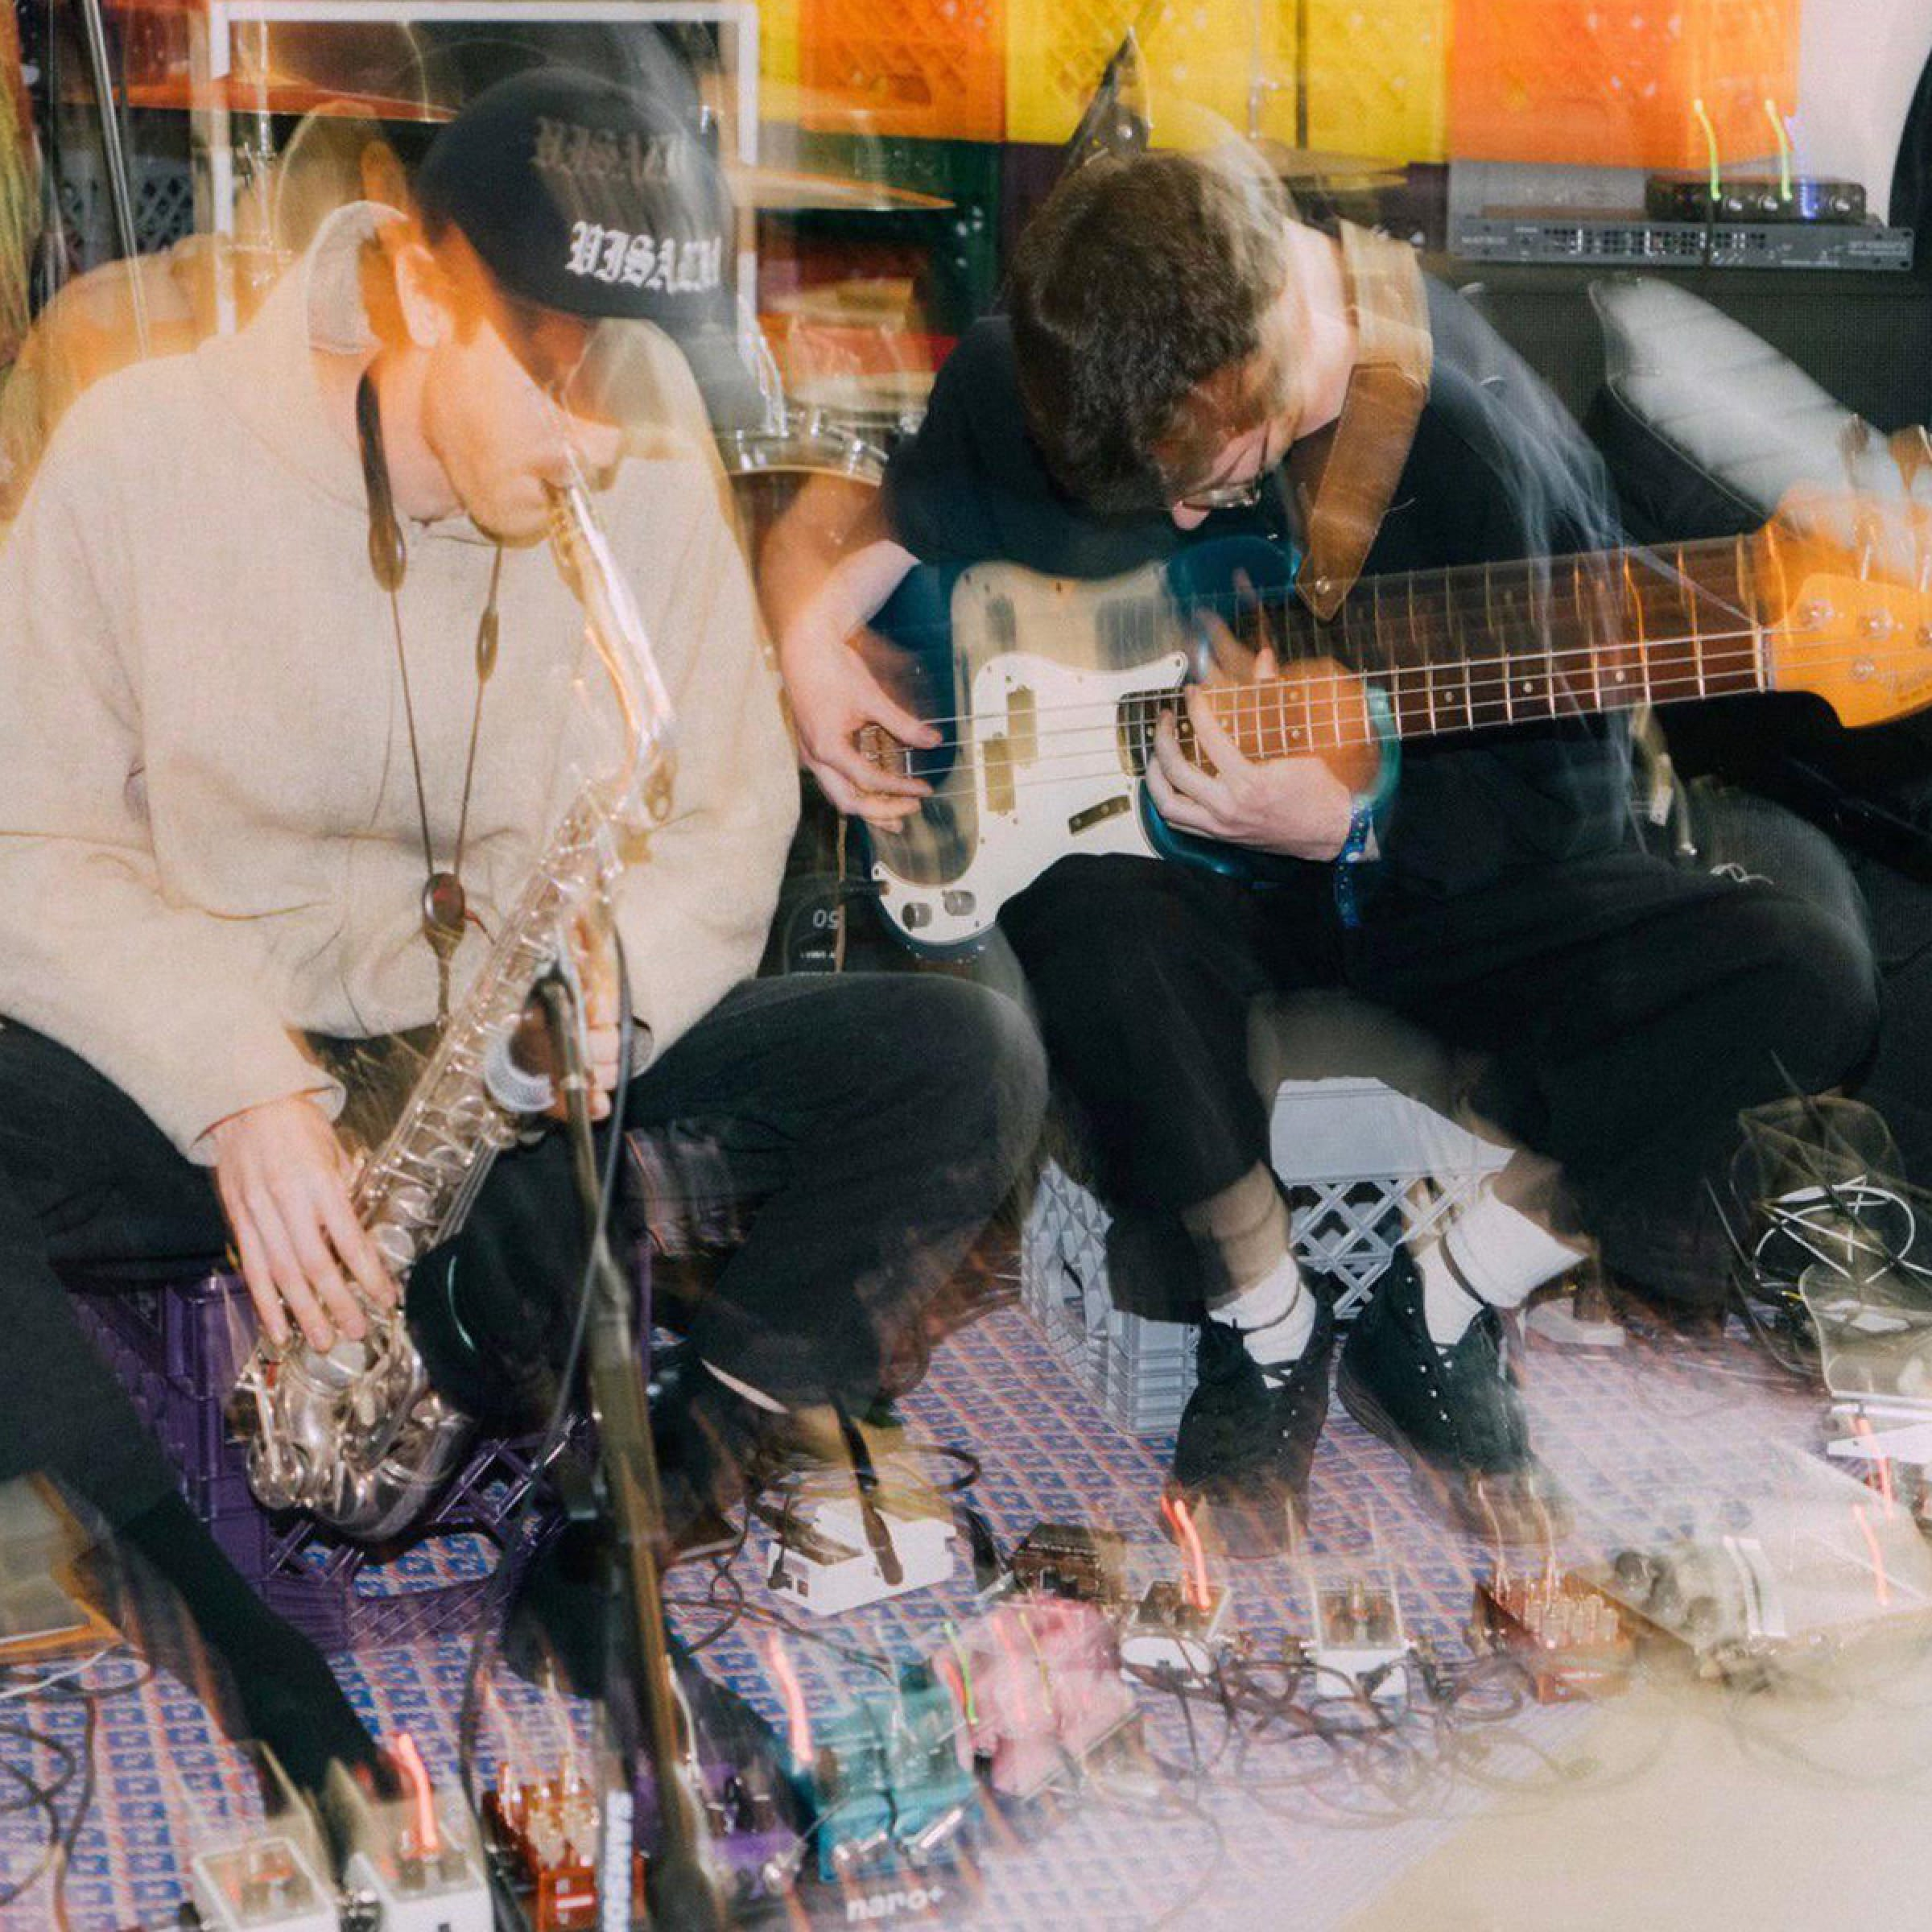 A blurry image of Sam Gendel and Sam Wilkes, playing their guitar and saxophone above a row of pedals.